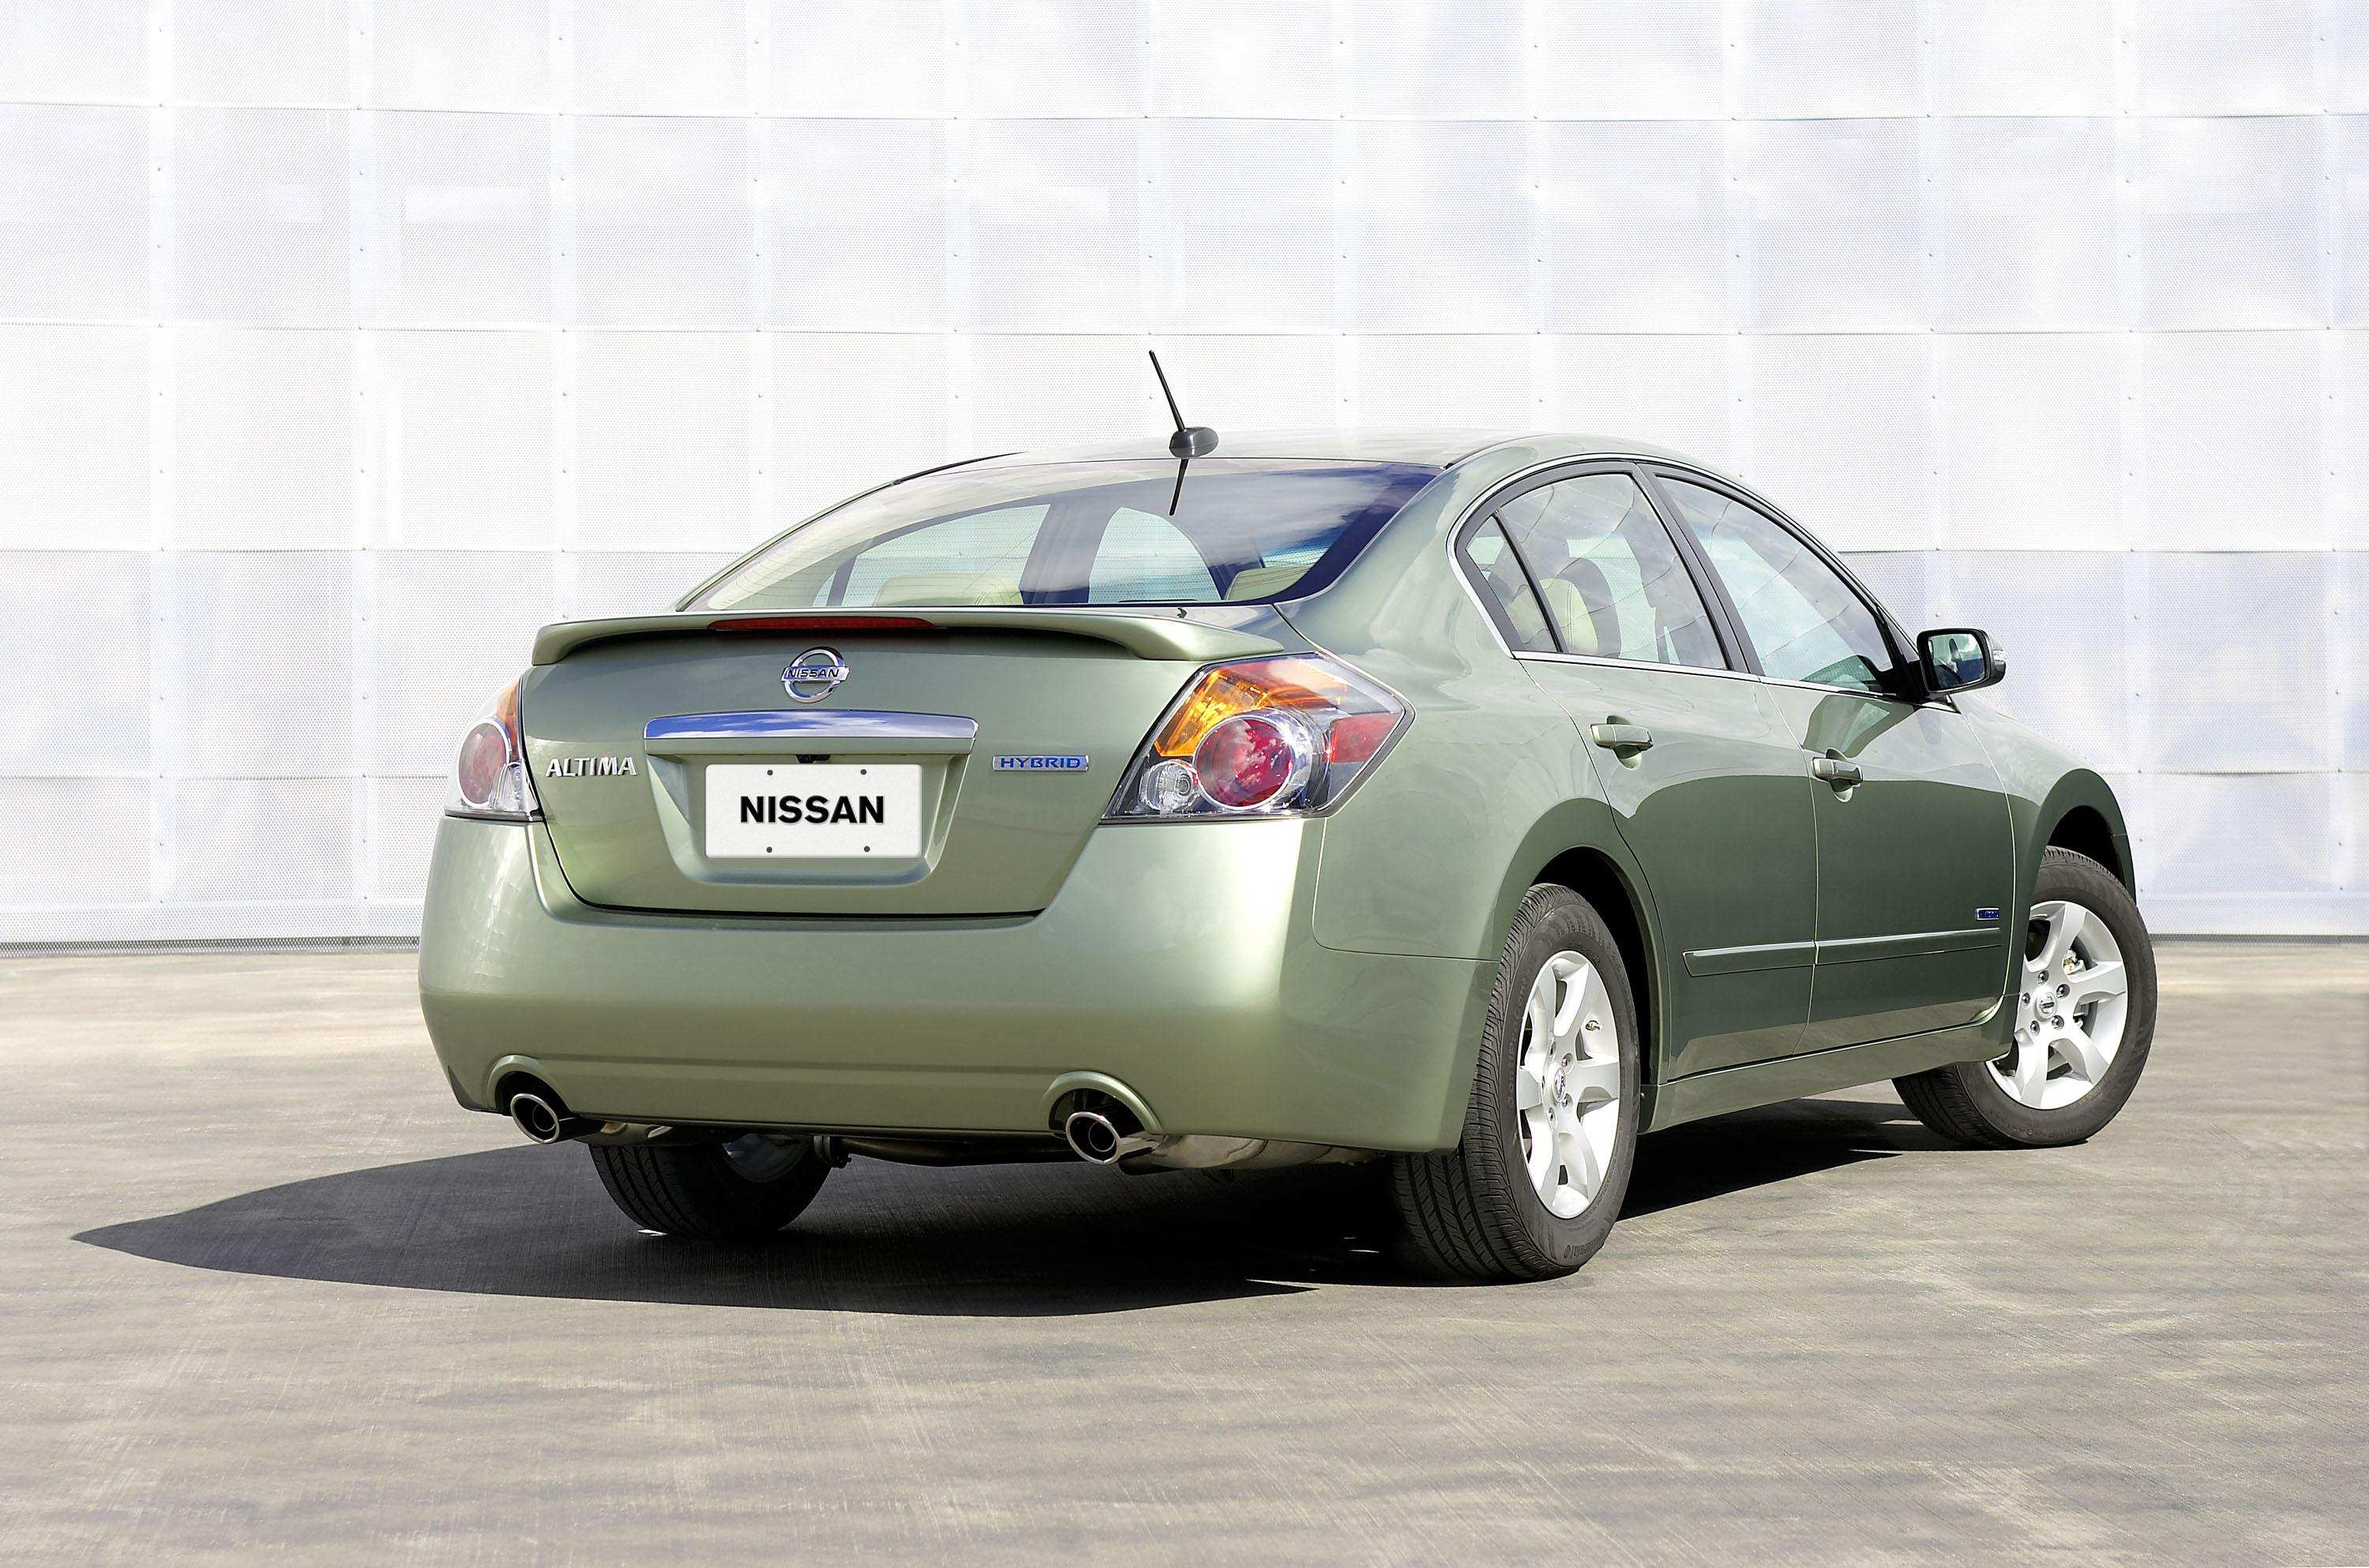 42 A 2007 Nissan Altima Hybrid Ratings